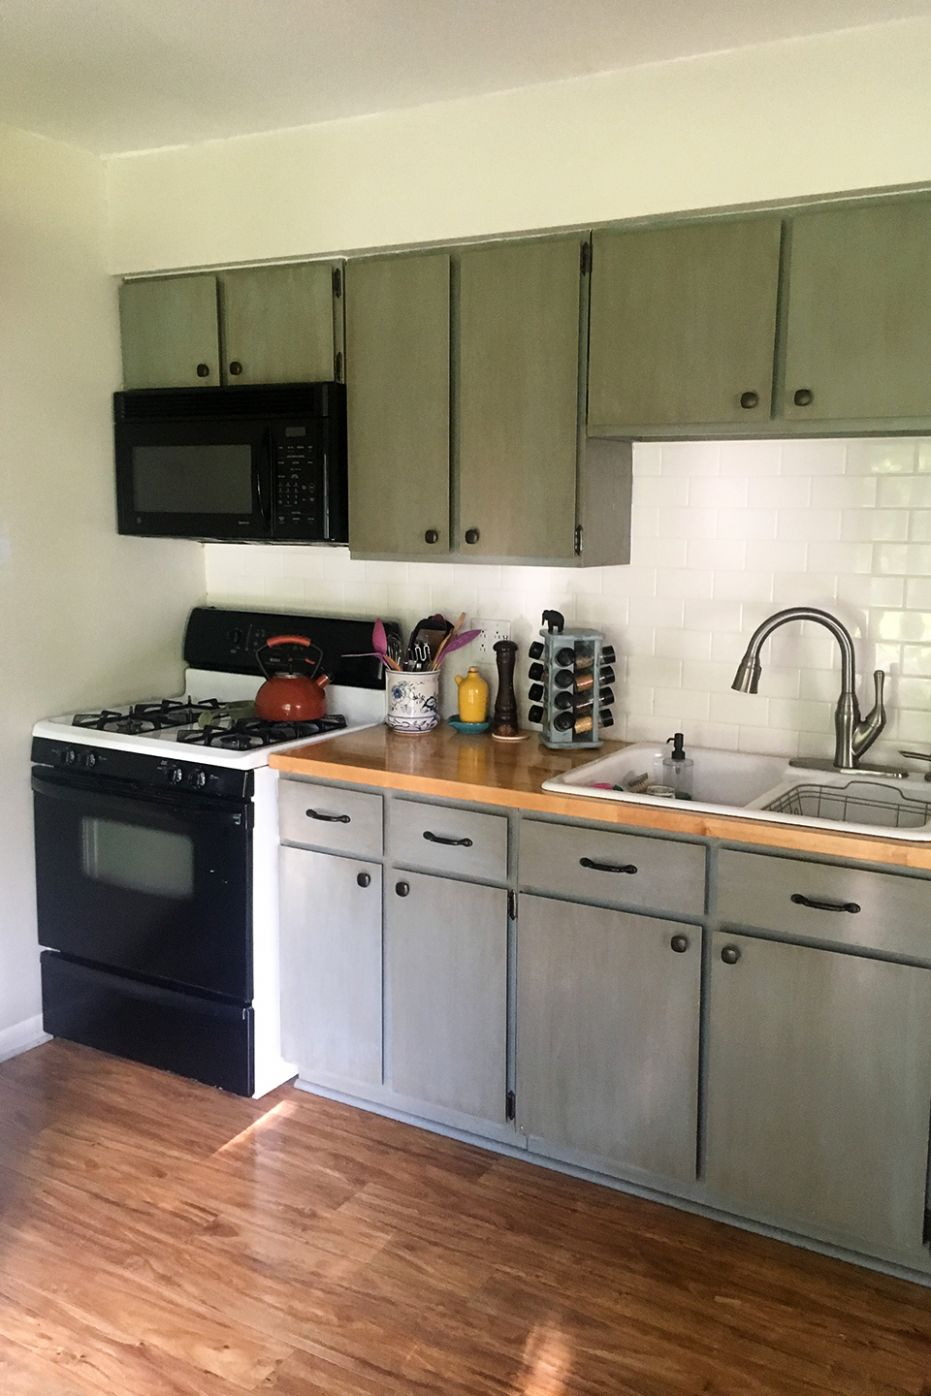 Kitchen Remodel on a Budget: 8 Low-Cost Ideas to Help You Spend Less - kitchen ideas and costs